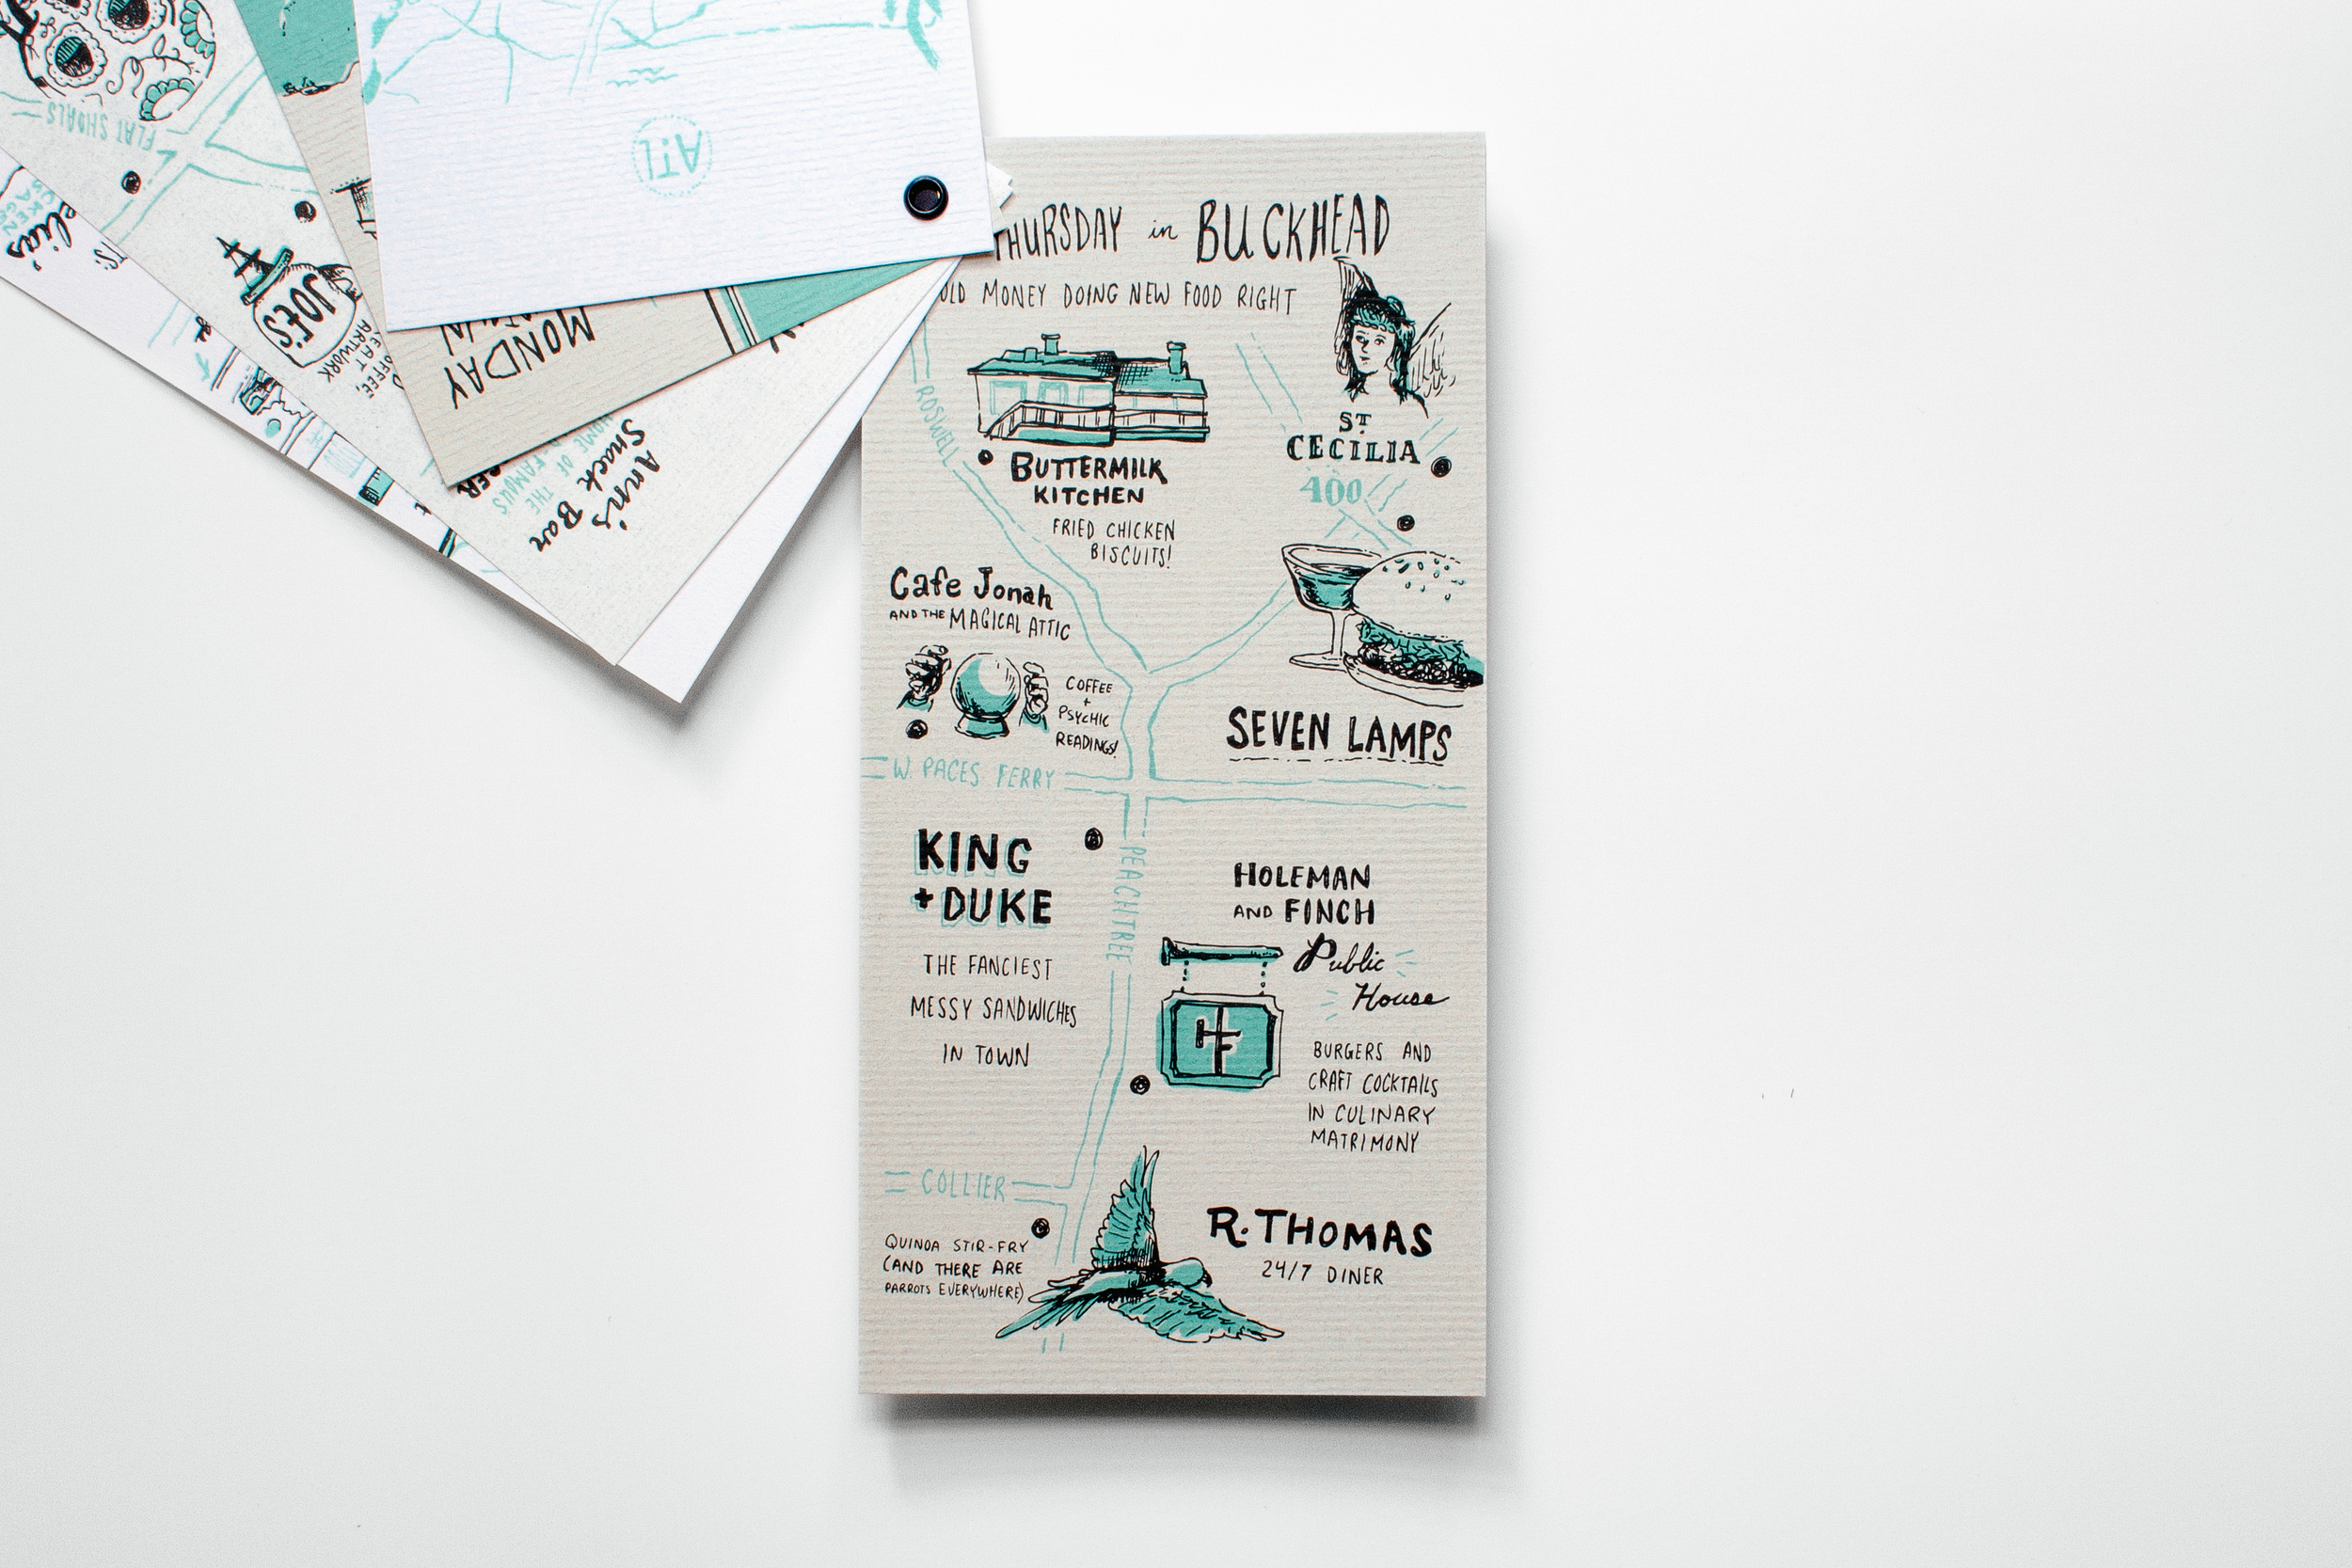 Hand drawn and hand lettering illustration work of a map of food and restaurants in Atlanta's buckhead neighborhood features the Buttermilk kitchen, st. cecilia, cafe jonah and the magical attic, seven lamps, king and duke, holeman and finch, and r. thomas. Printed on Neenah Paper CLASSIC Laid Cover Silverstone 80C.